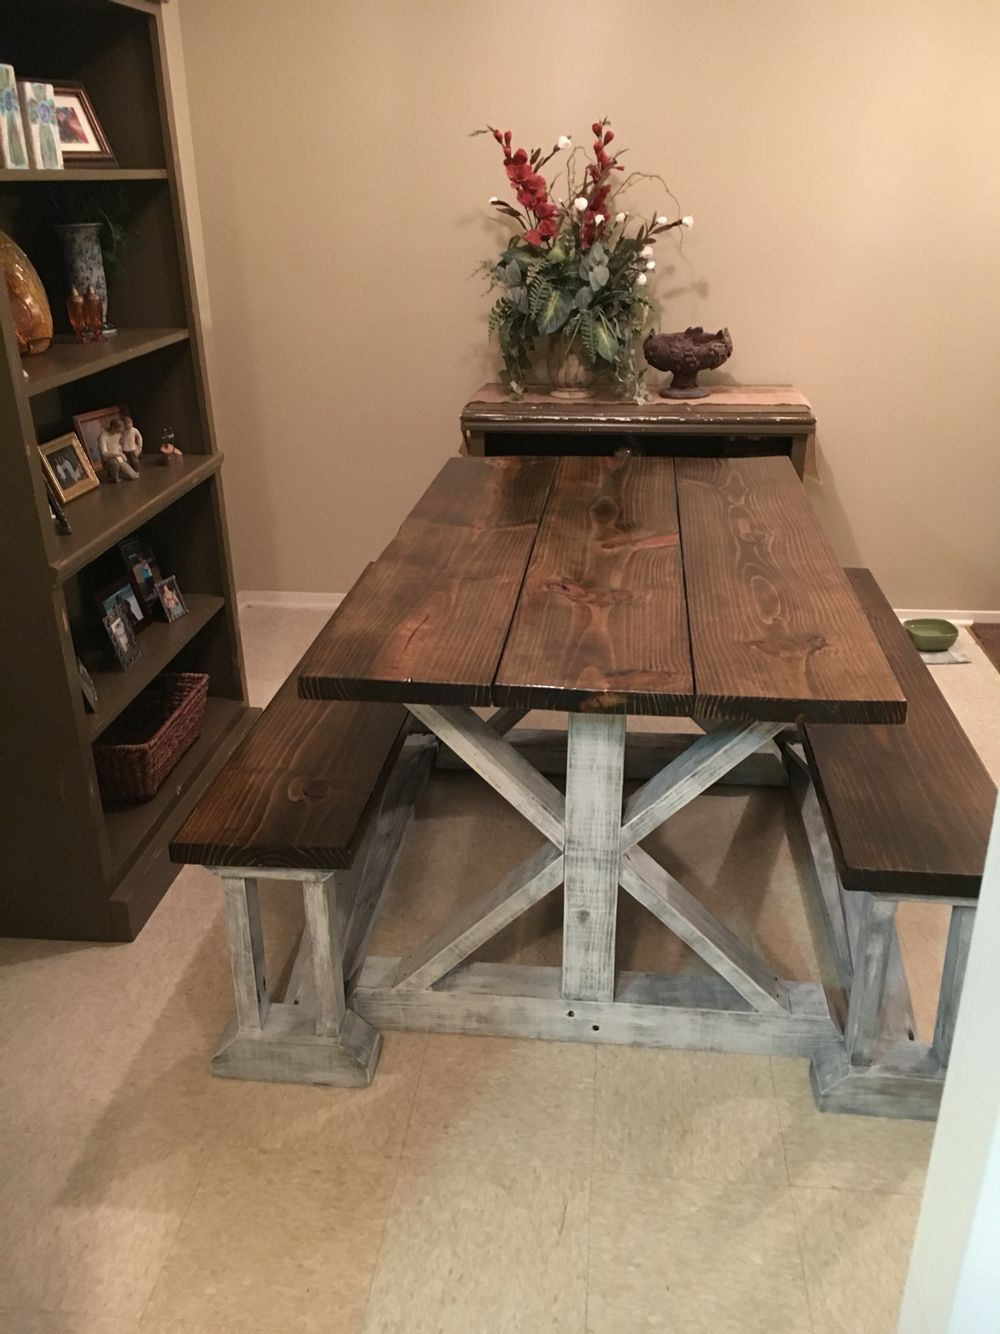 Handmade Farmhouse Table With Benches Farmhouse Table With Bench Farmhouse Dining Table Handmade Home Decor